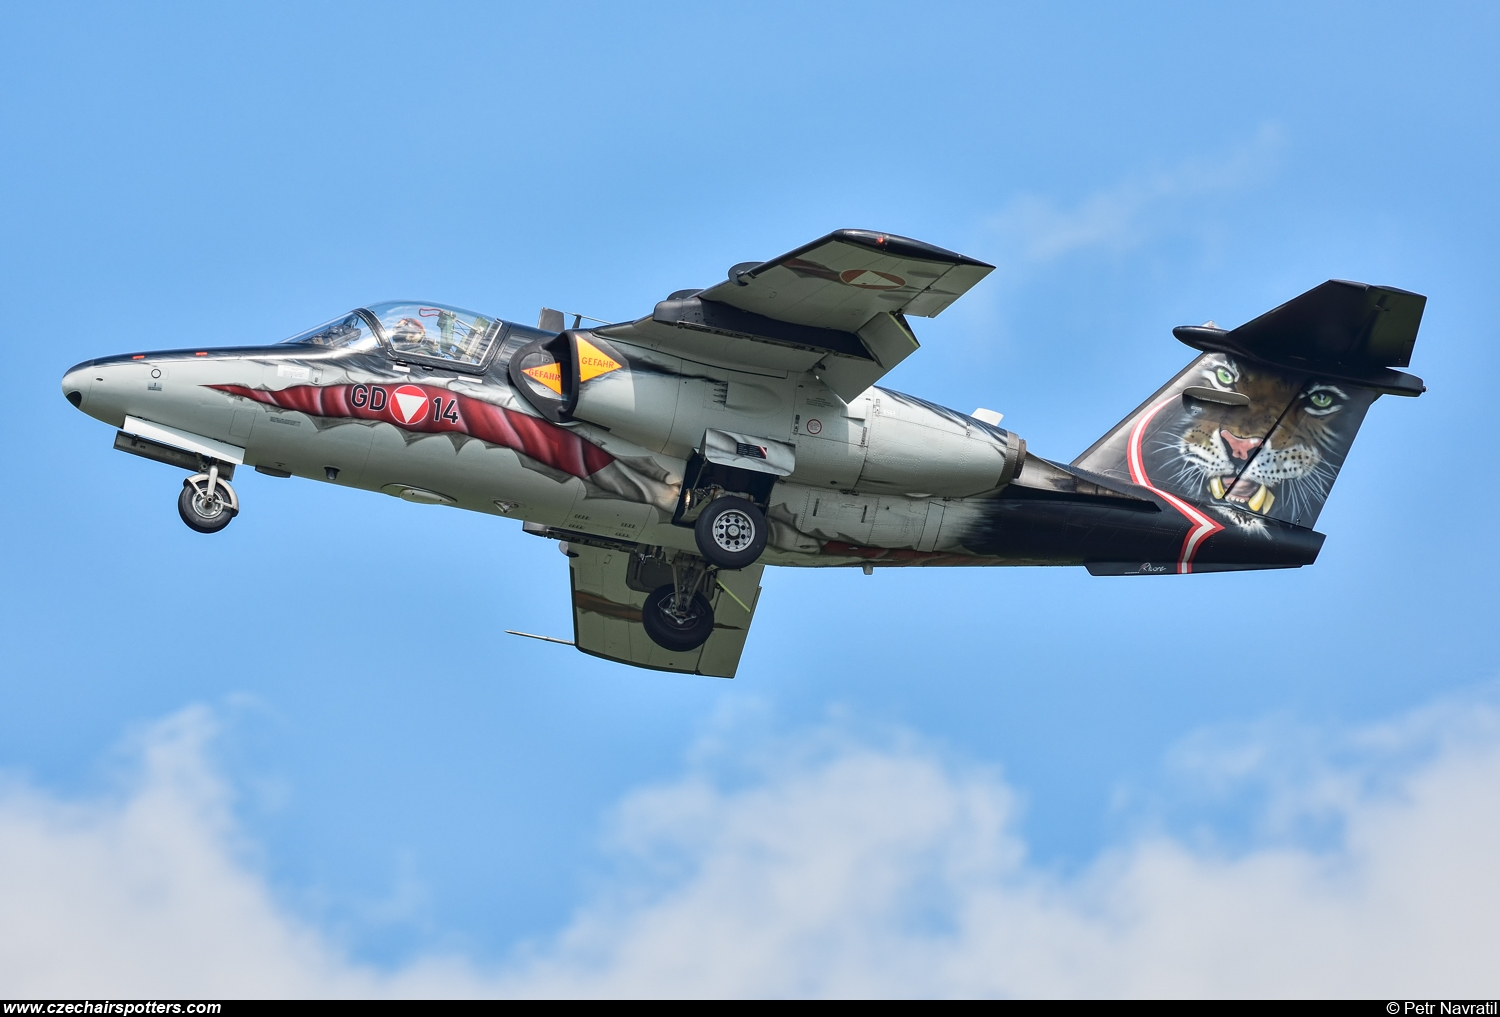 Austria - Air Force – Saab Saab 105OE GD-14/1114